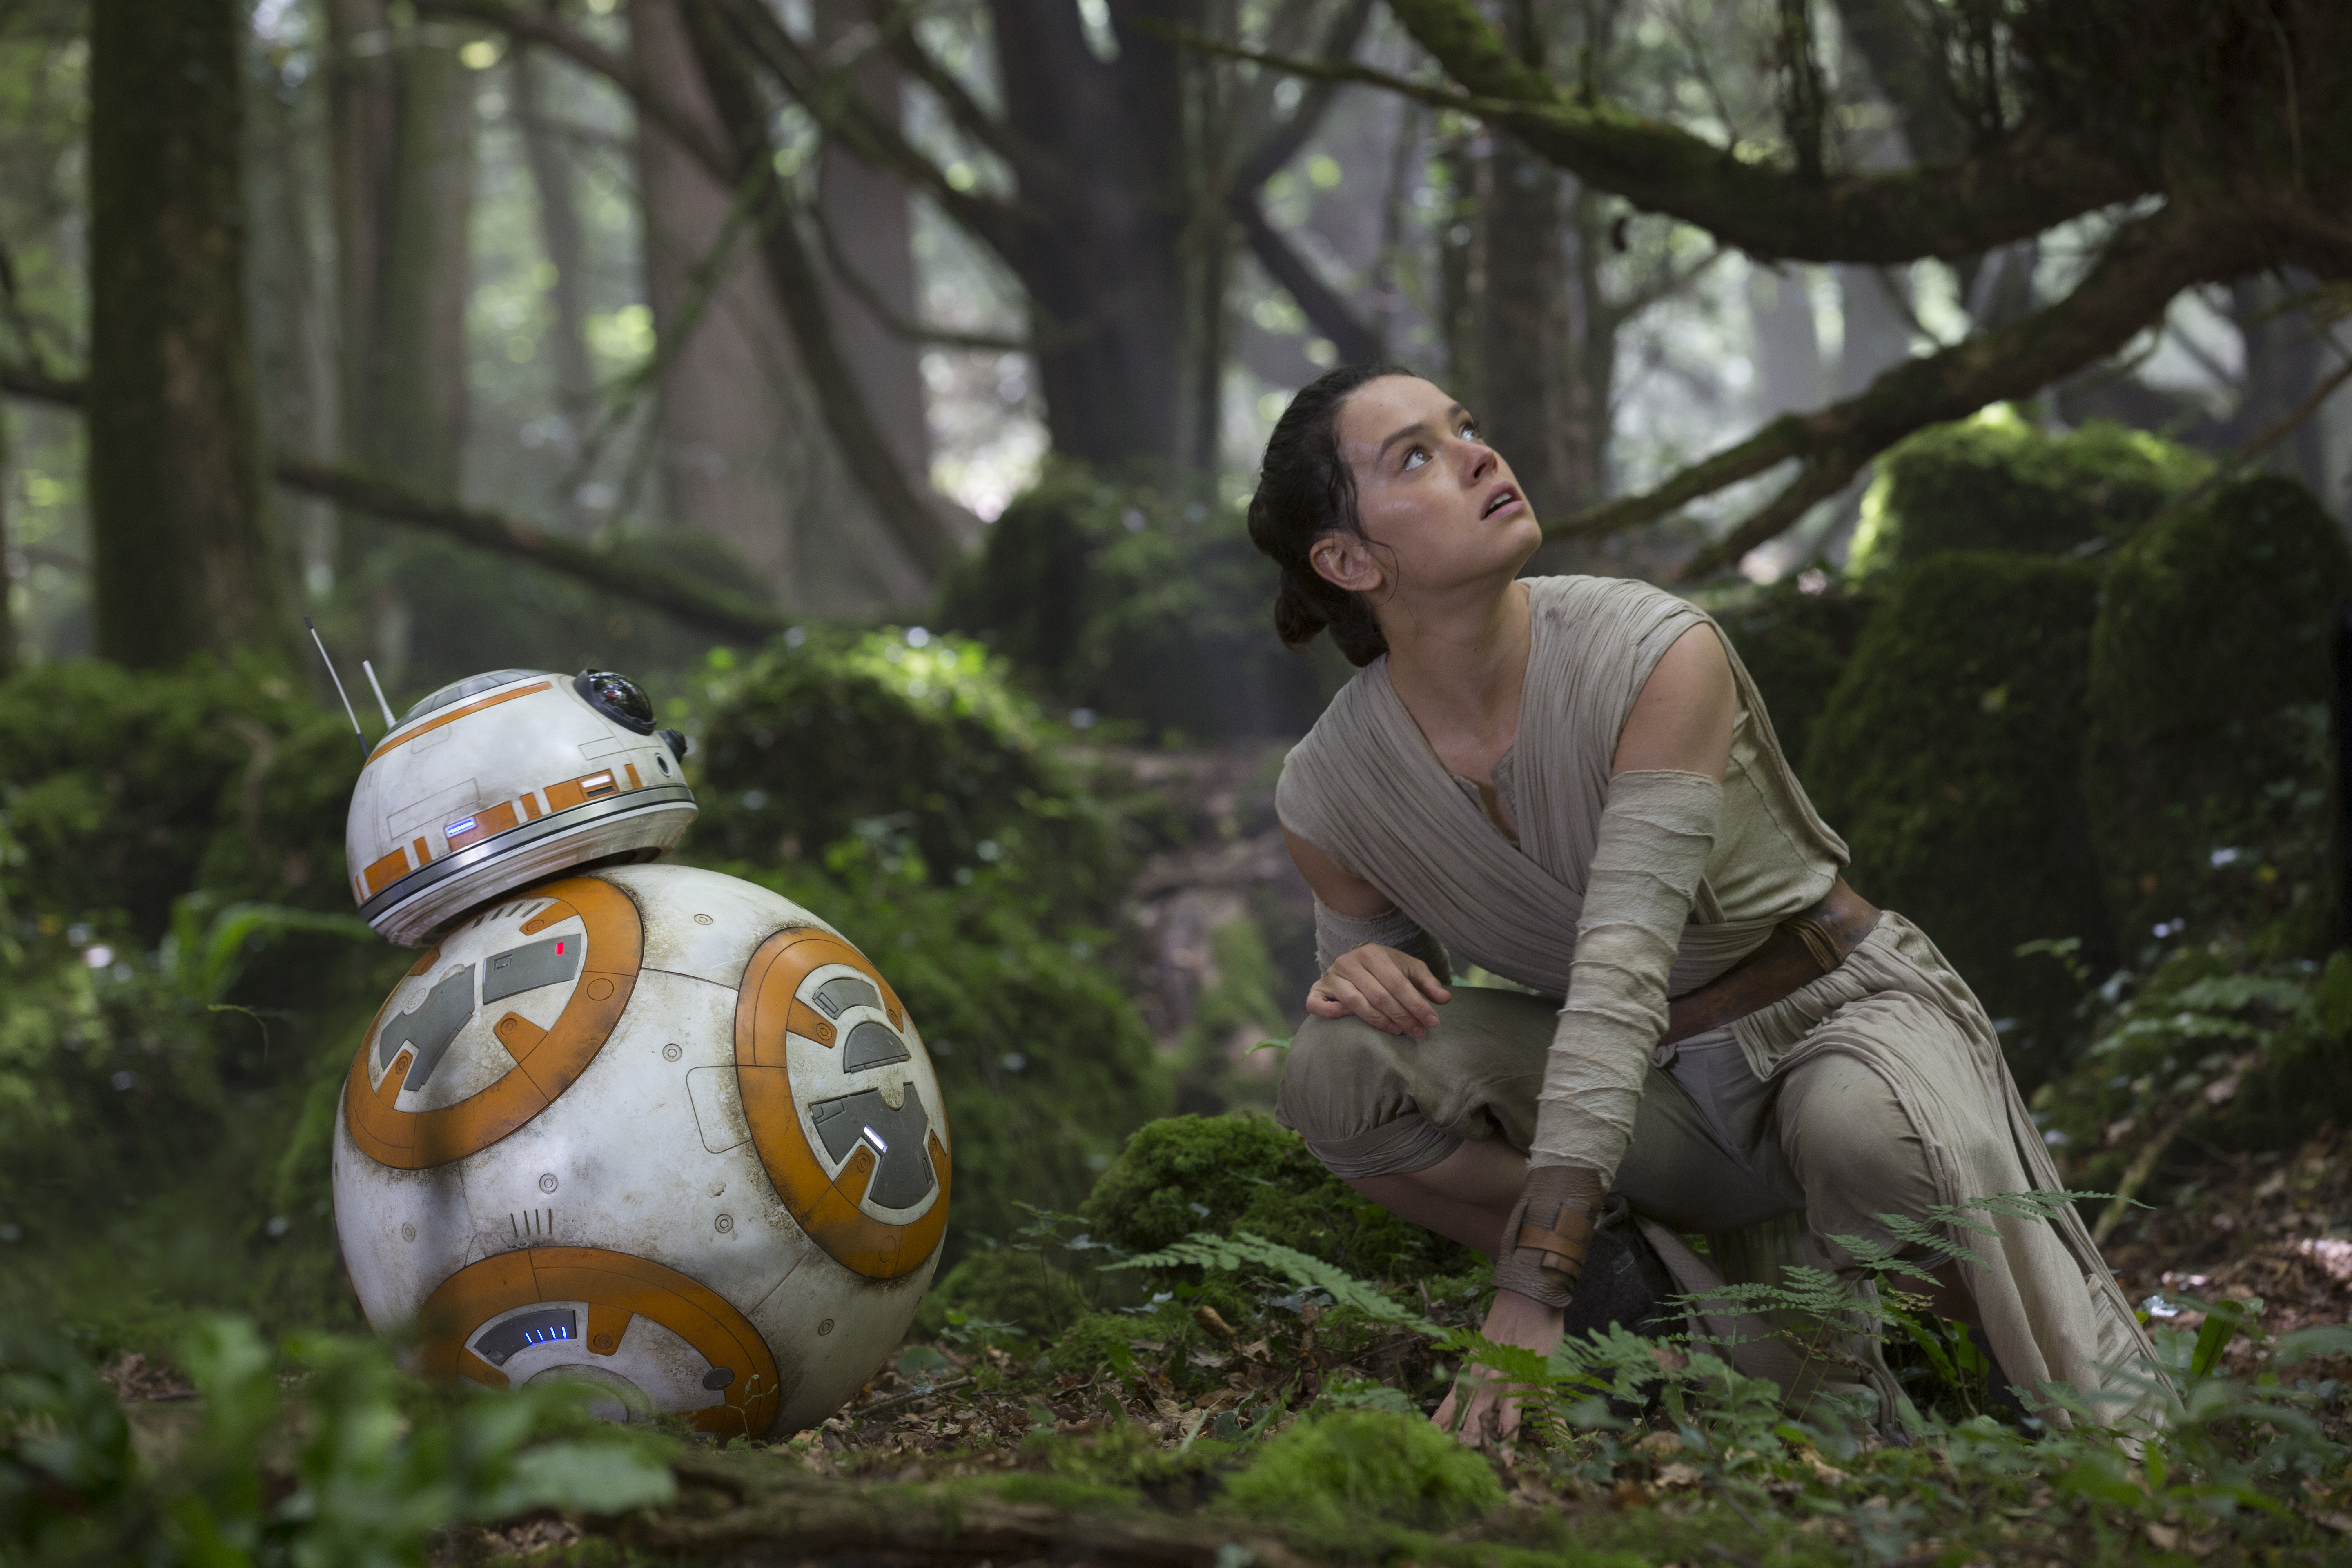 Star Wars: The Force Awakens..L to R: BB-8 and Rey (Daisy Ridley)..Ph: David James..? 2015 Lucasfilm Ltd. & TM. All Right Reserved.